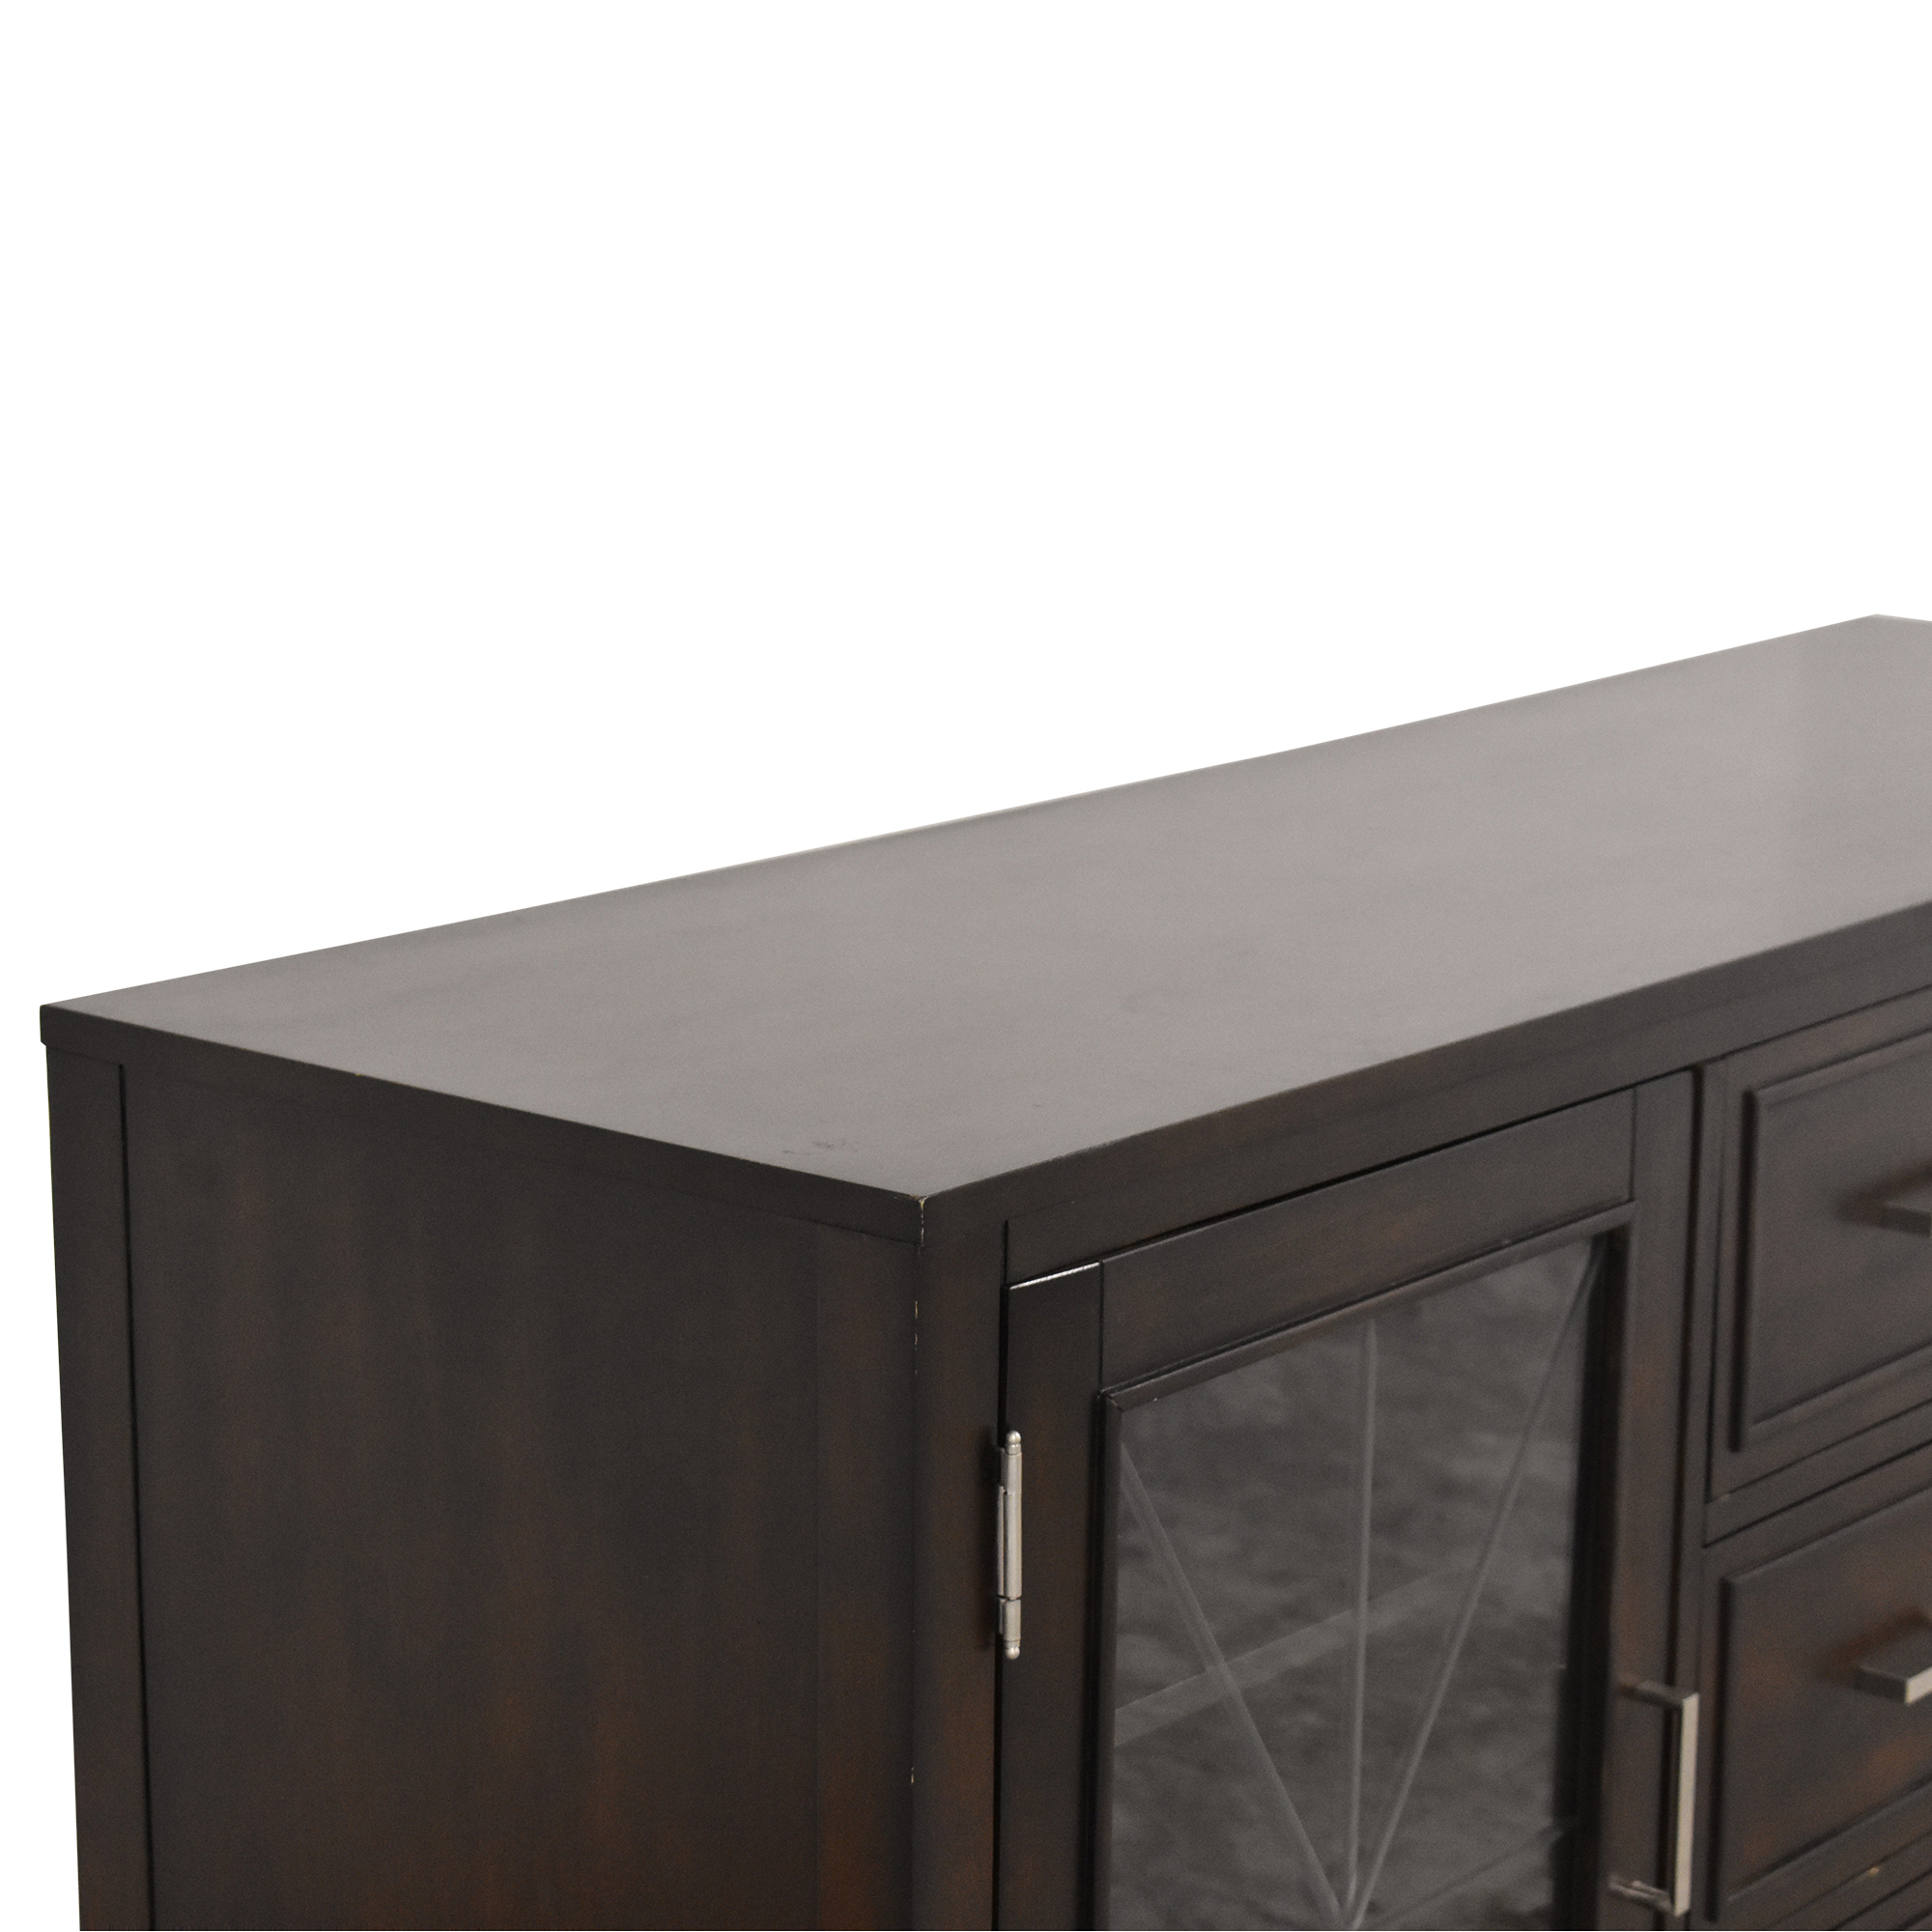 Raymour & Flanigan Raymour & Flanigan Evans TV Stand on sale